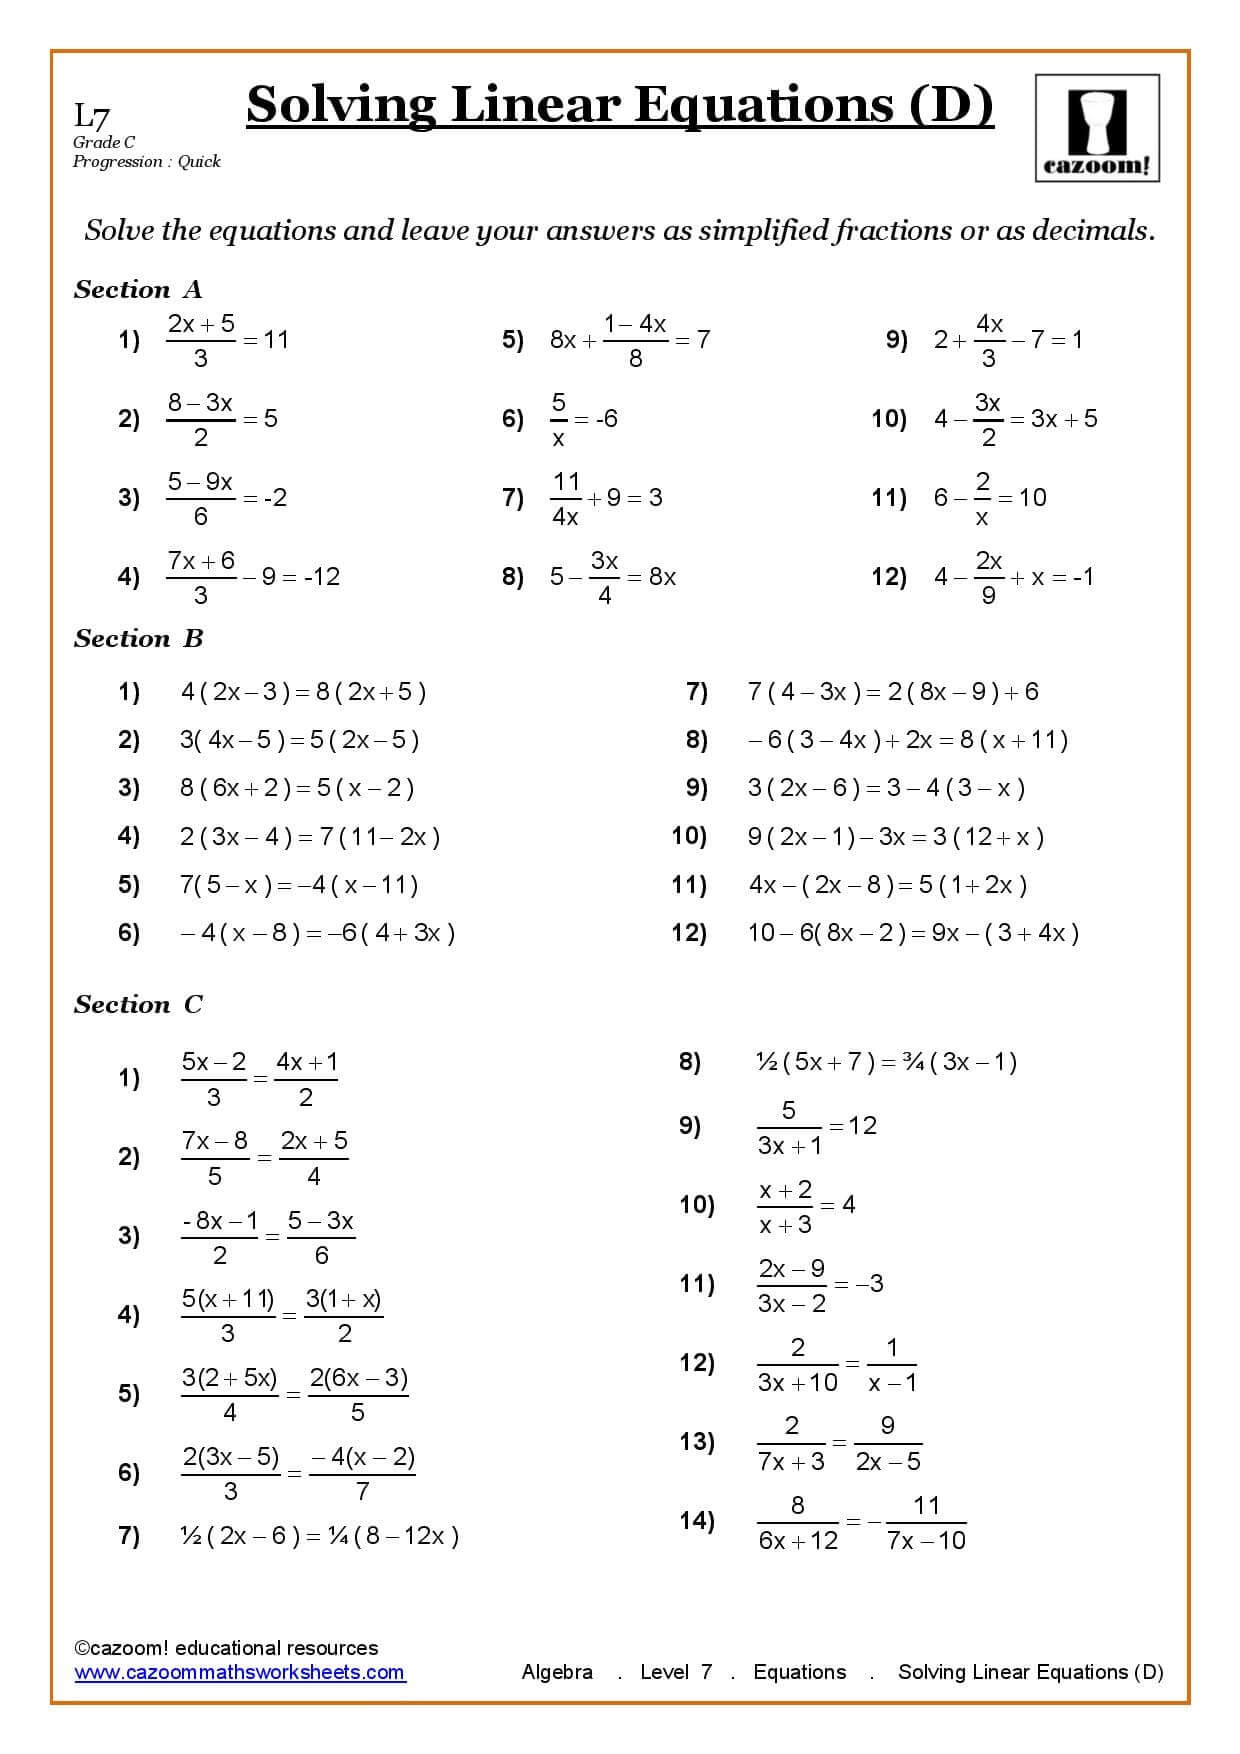 Quadratic Equation Worksheet With Answers 008 - Quadratic Equation Worksheet With Answers